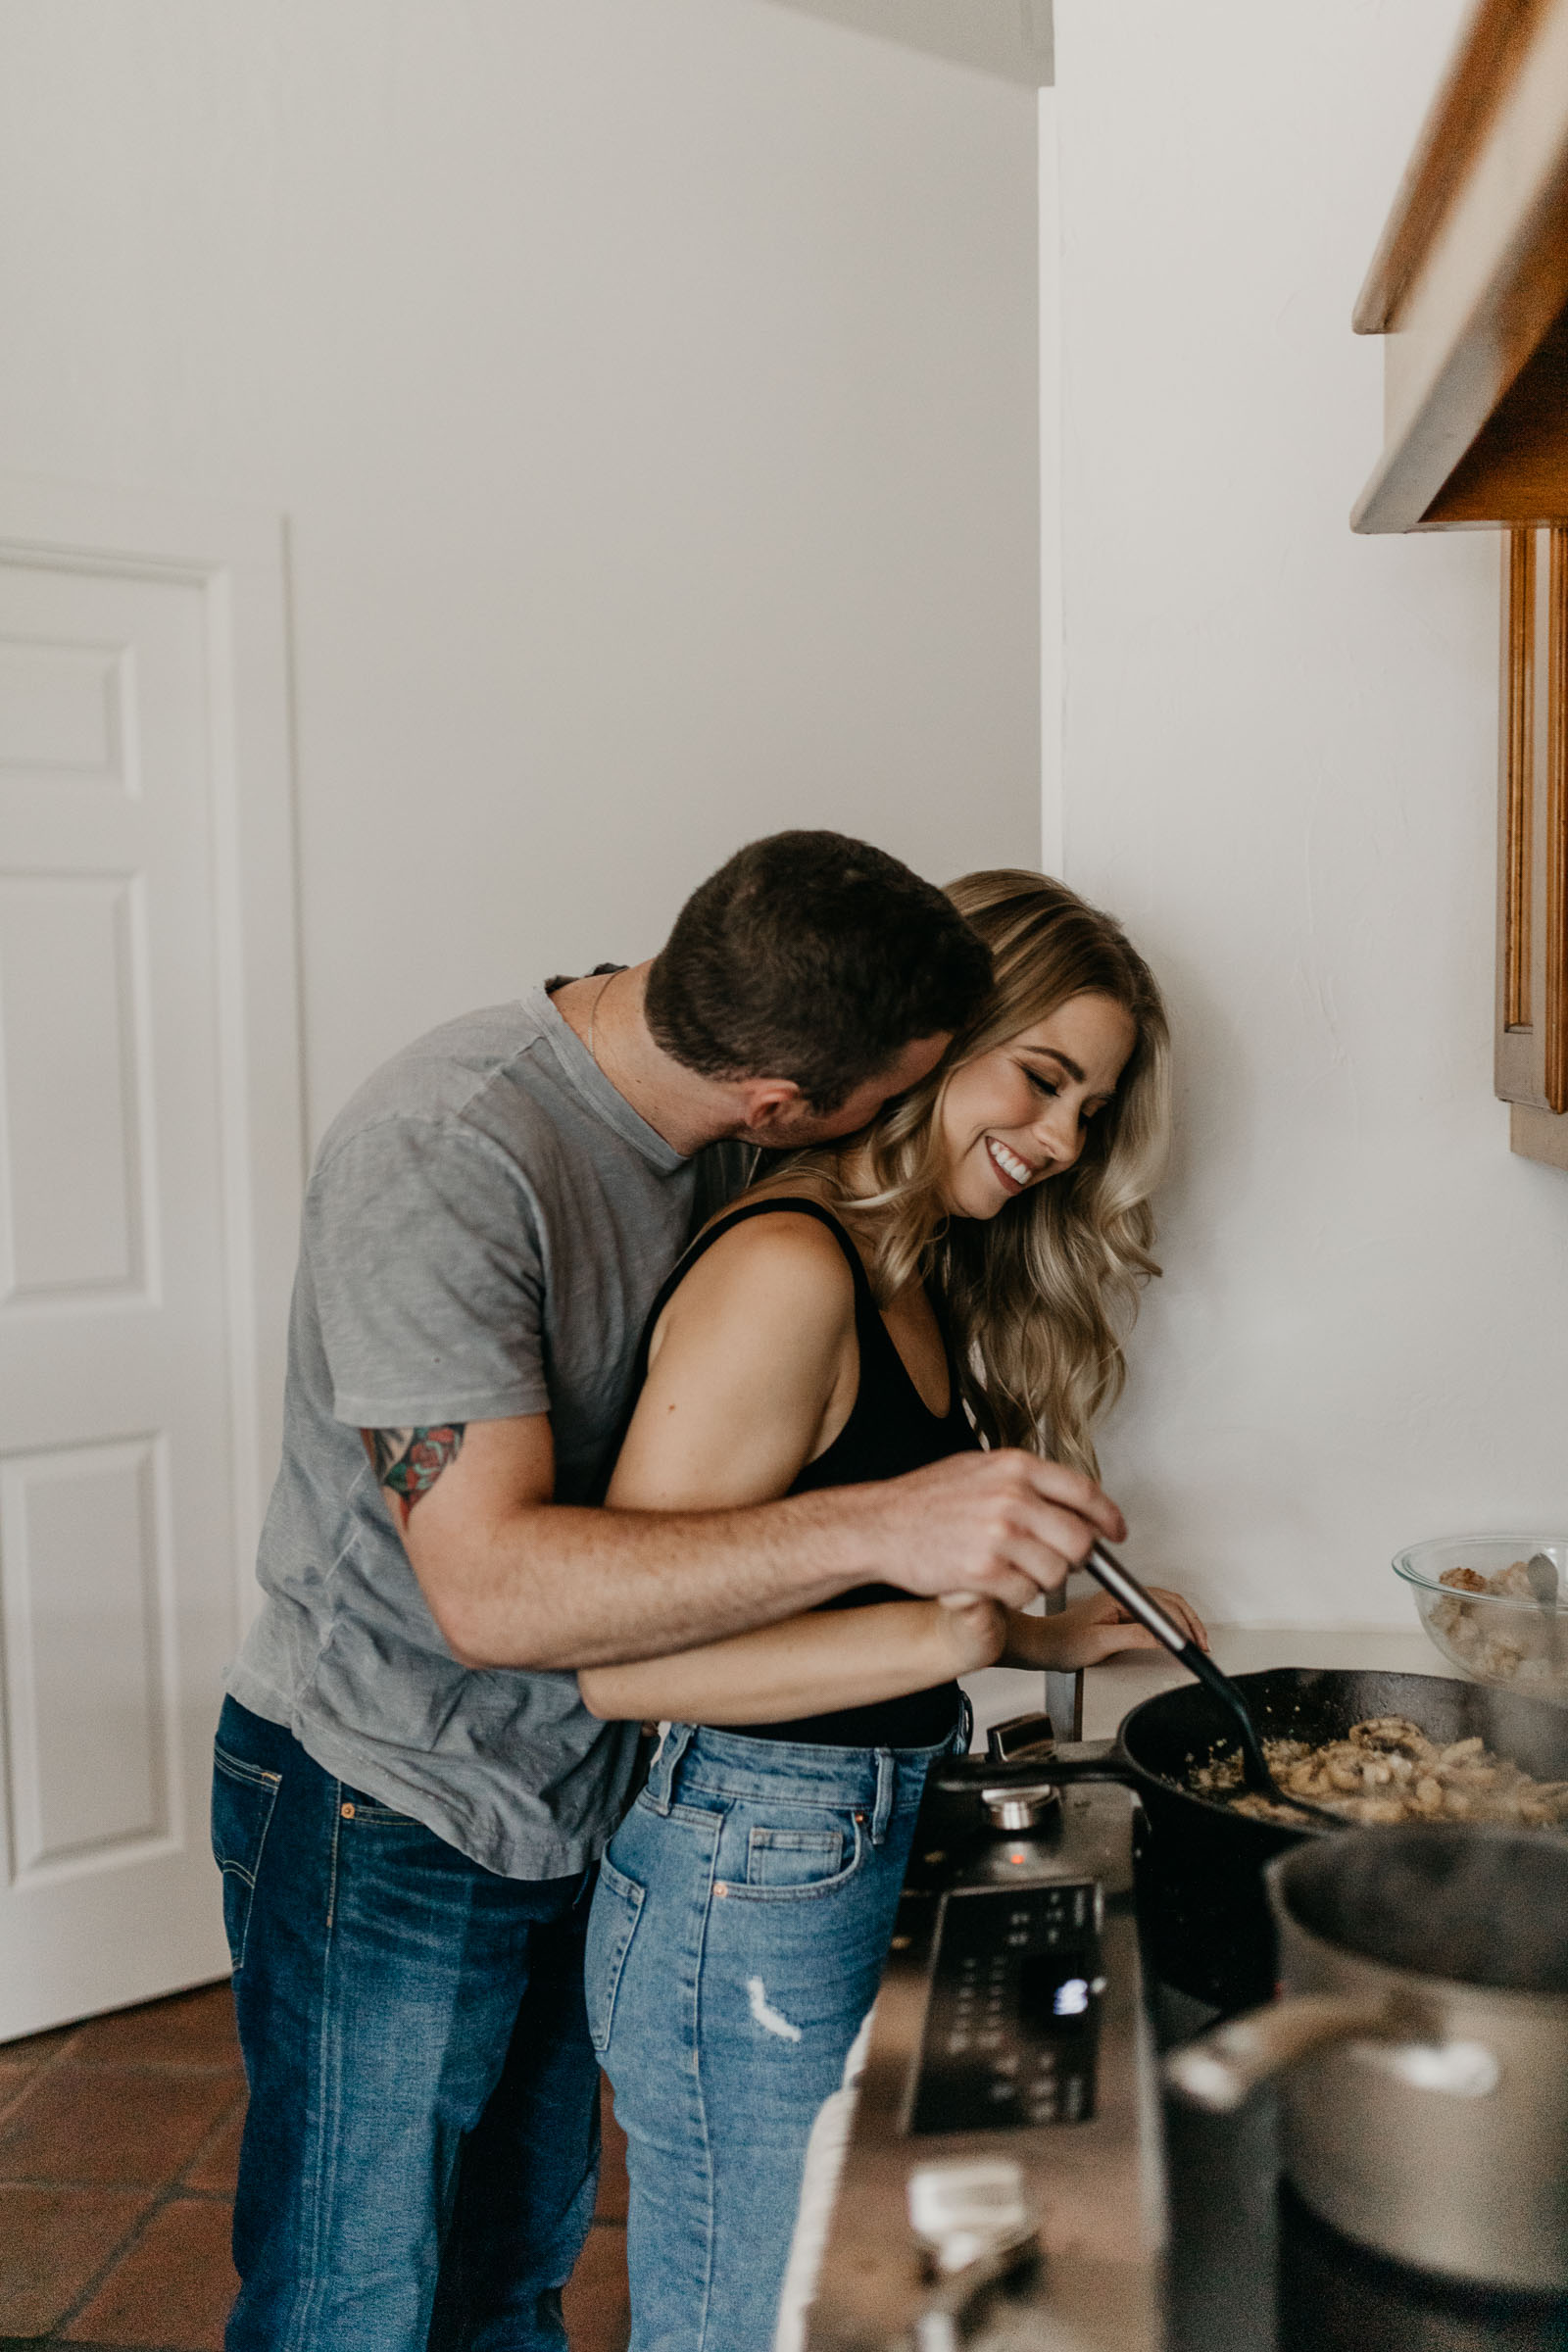 Boy kissing girl on the cheek as she cooks dinner